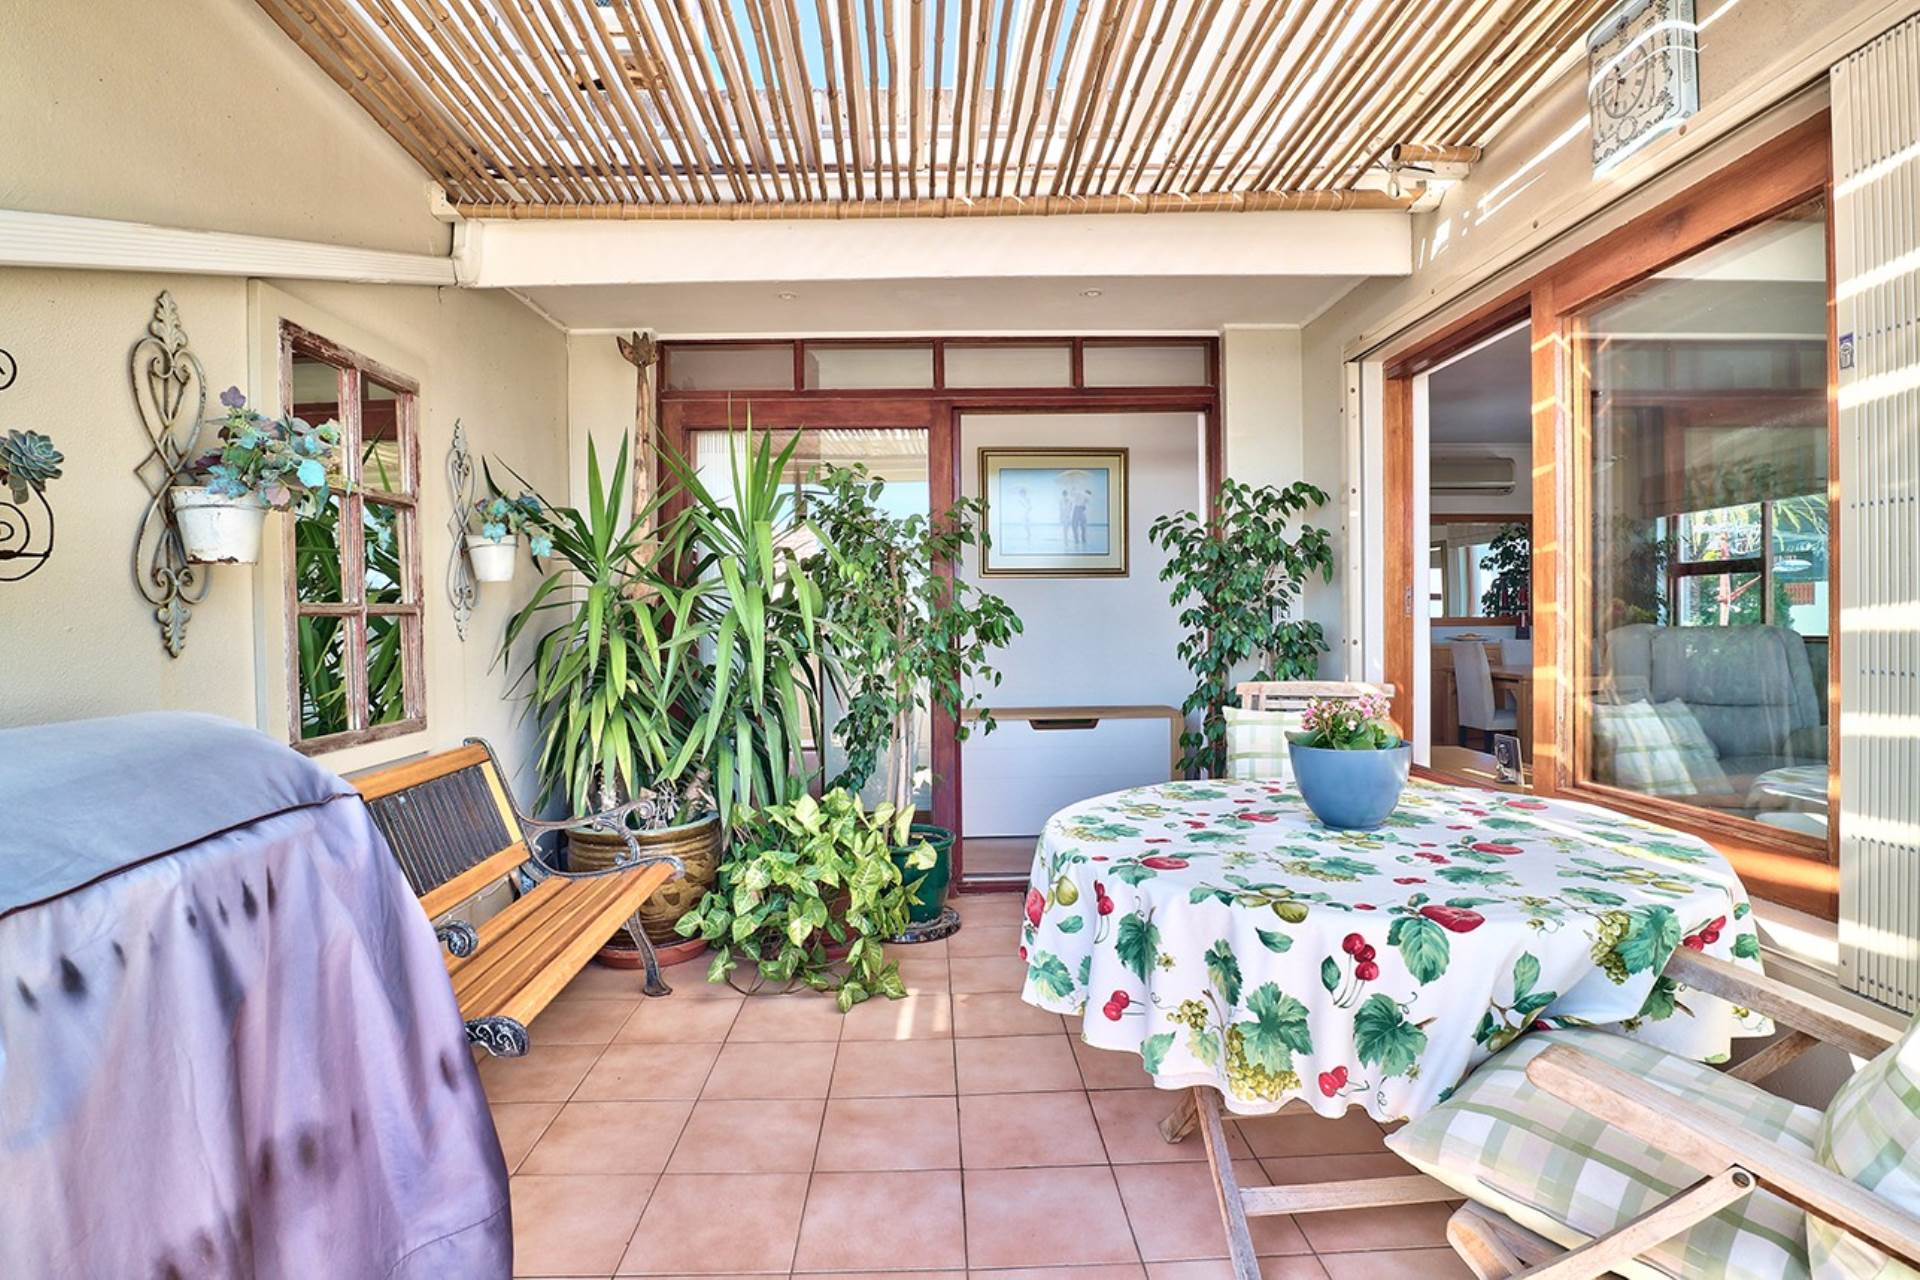 Vredehoek property for sale. Ref No: 13534483. Picture no 8